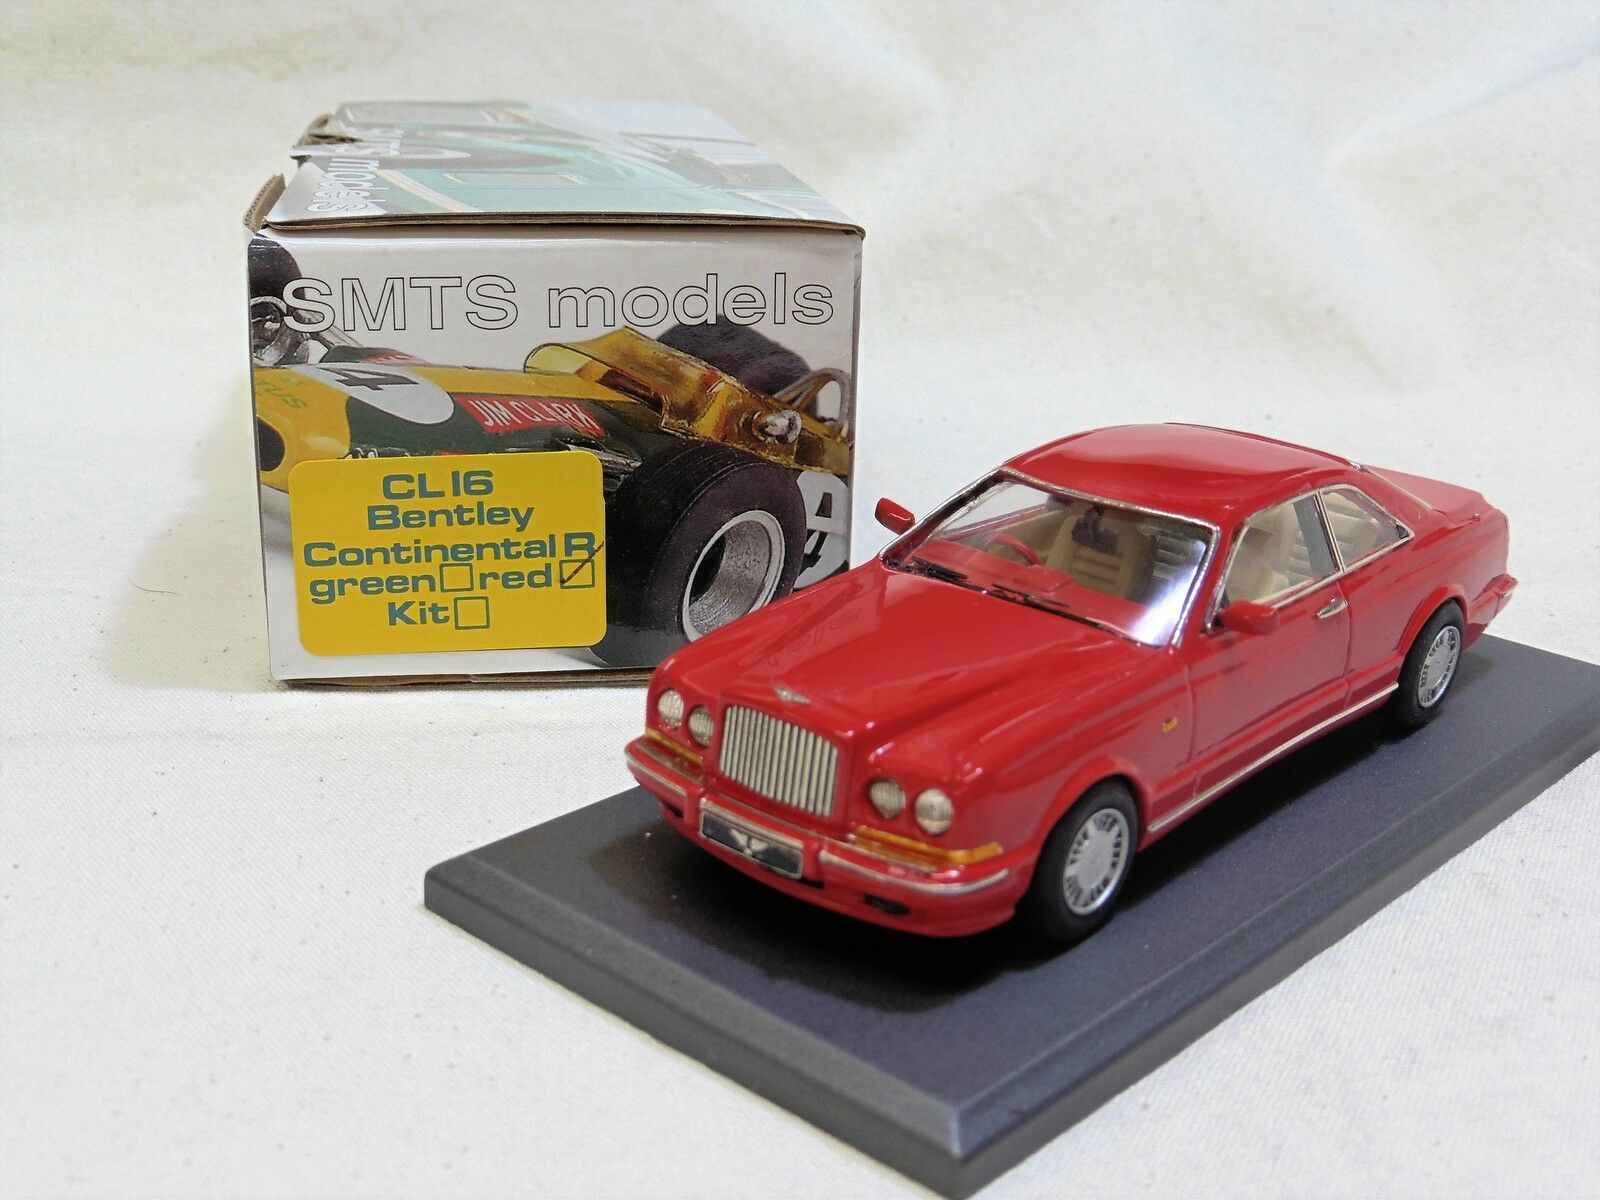 1/43 cl16 Bentley Continental R BY SMTS